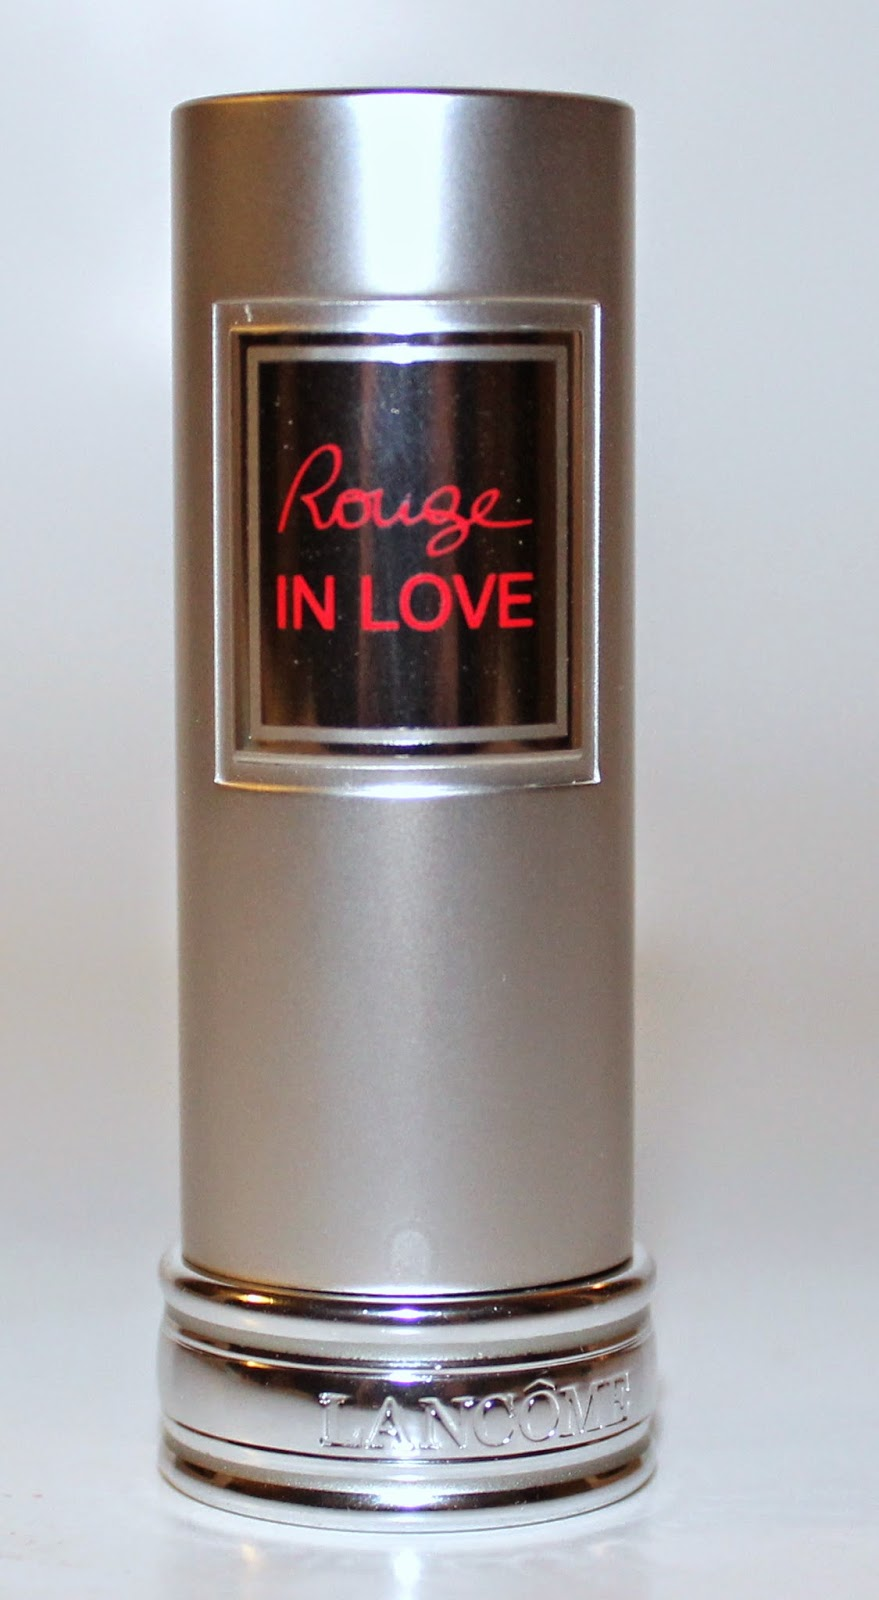 Lancôme Rouge in Love Lipcolour in 343B Fall in Rose